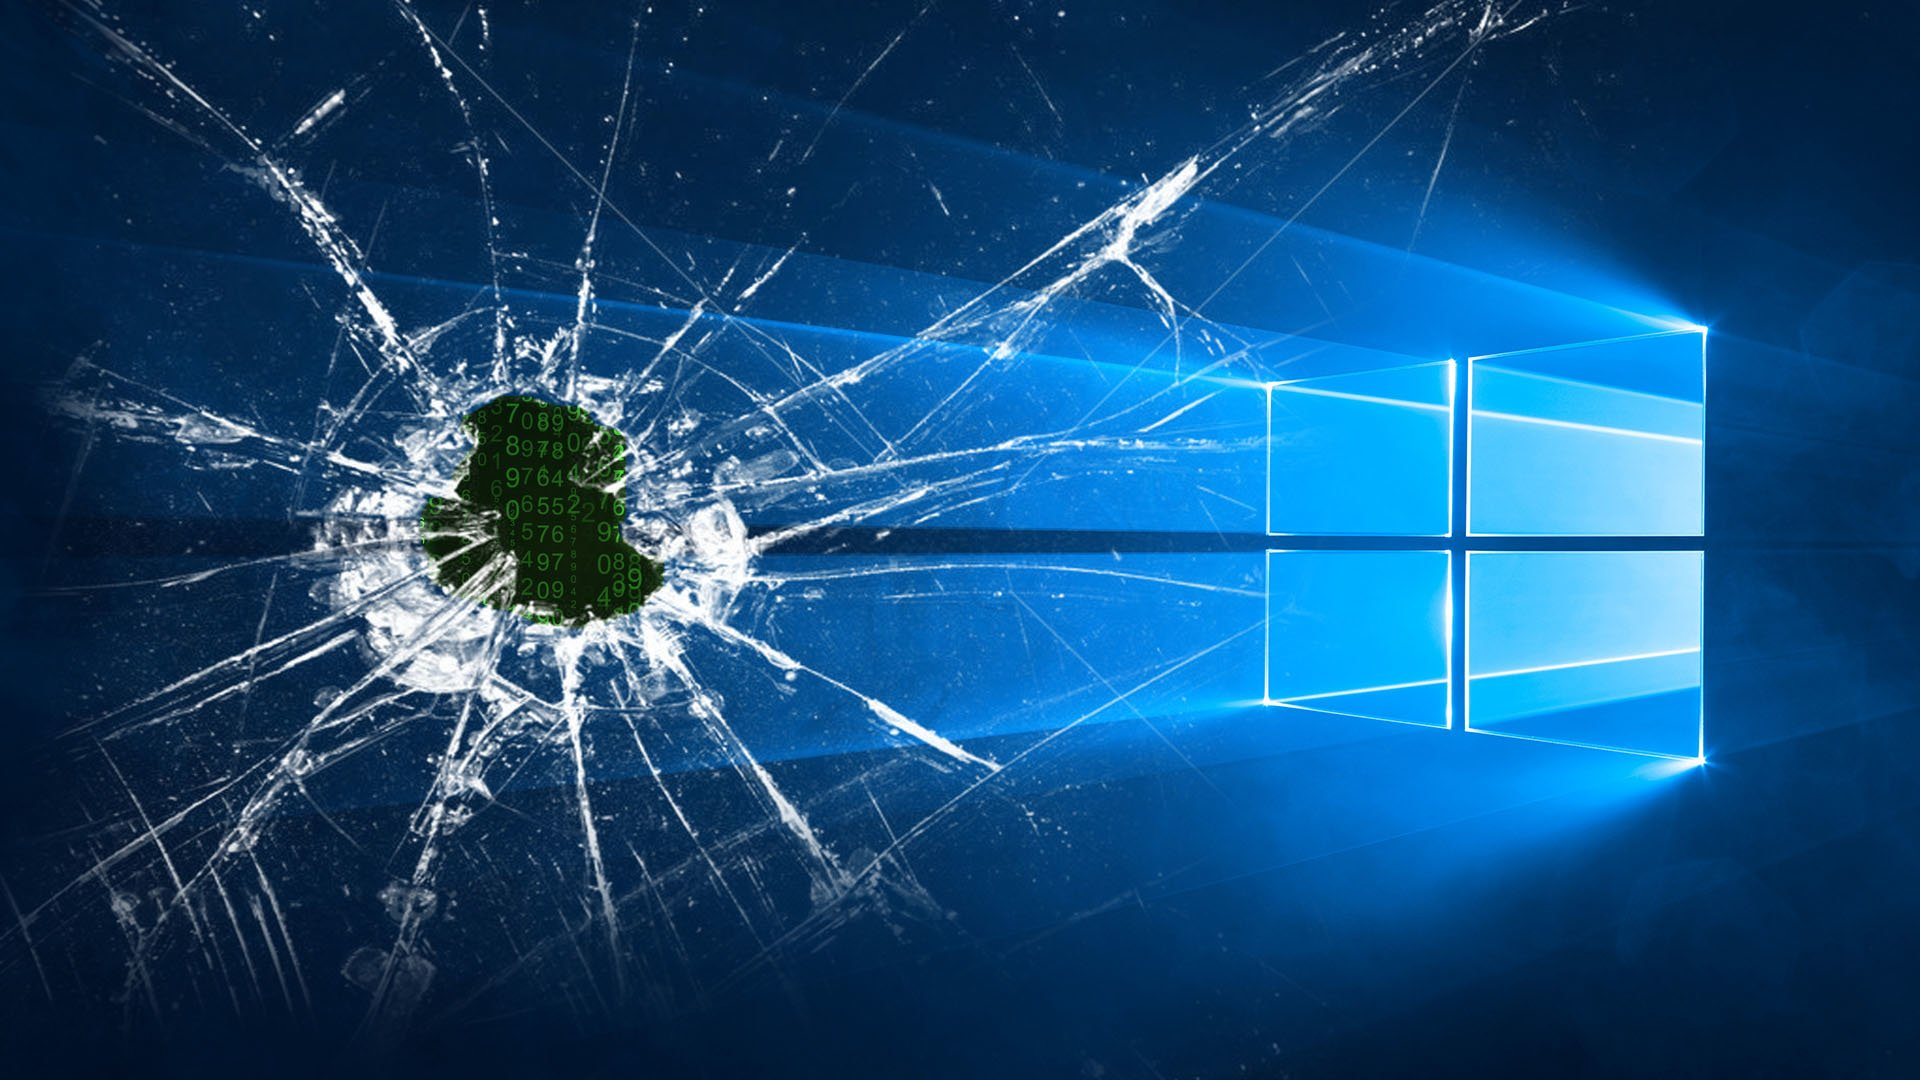 Crack screen windows 10 hd wallpaper background image 1920x1080 id 871557 wallpaper abyss - Cool screensavers for cracked screens ...